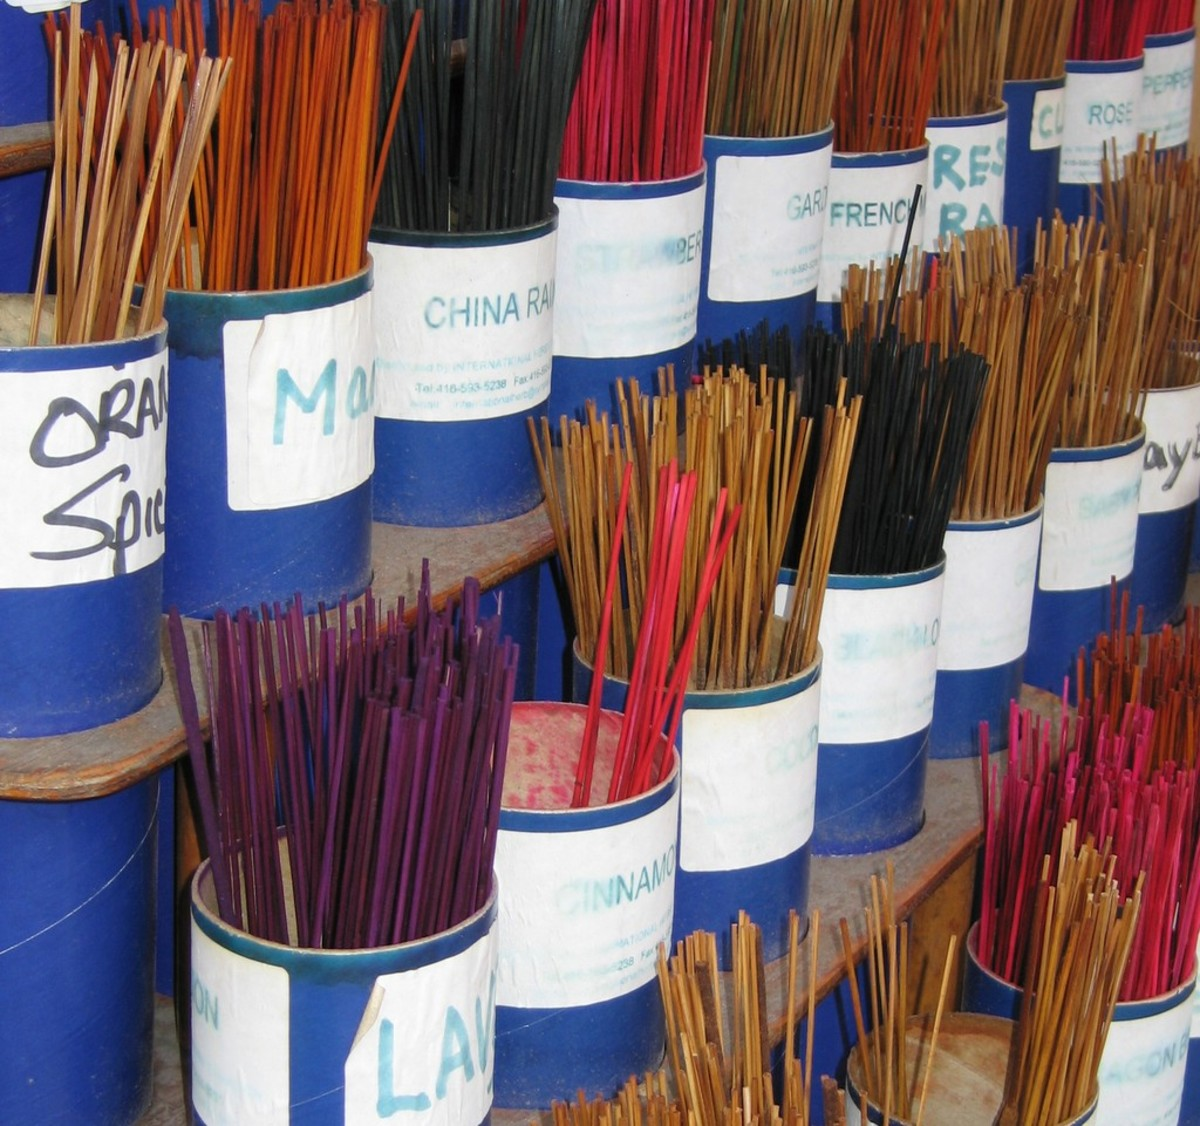 Incense sticks are the most commonly sold incense.